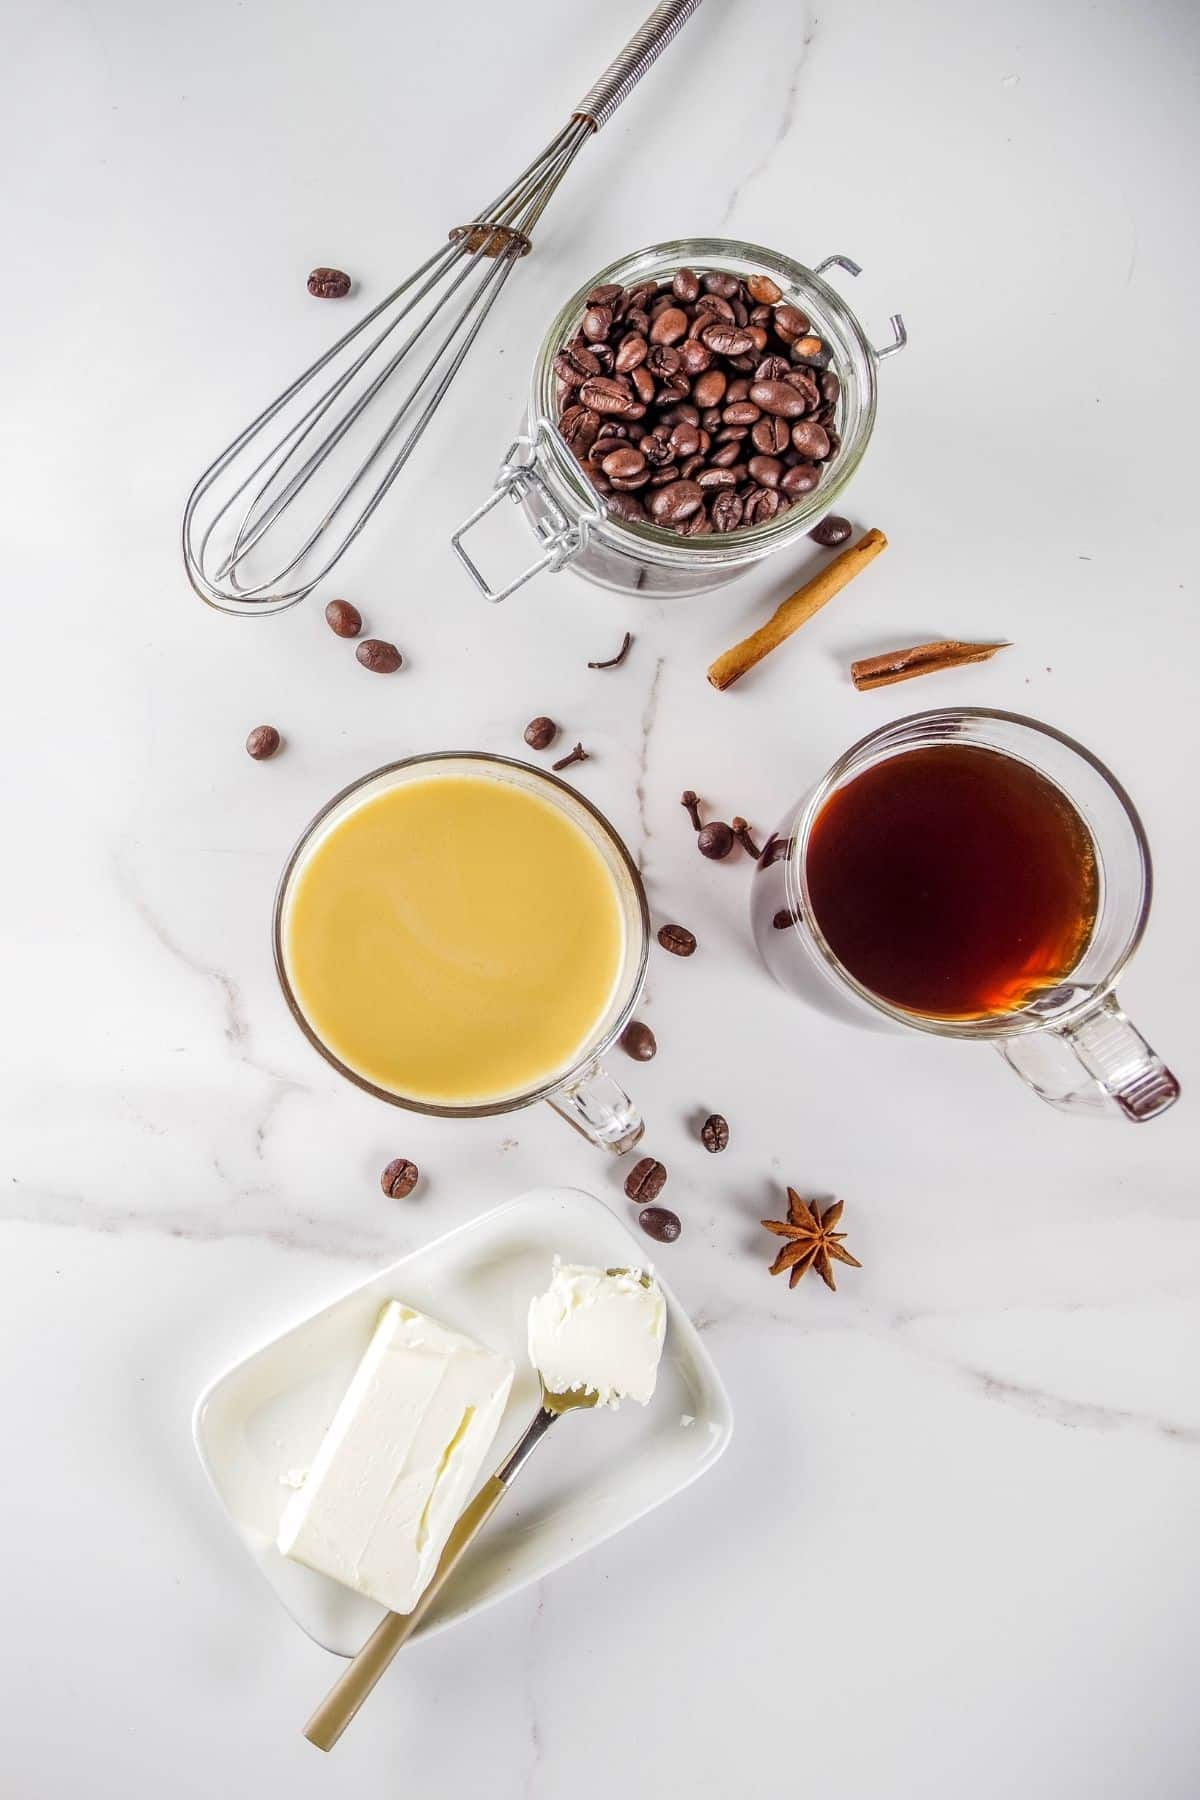 ingredients for butter coffee on a marble kitchen countertop